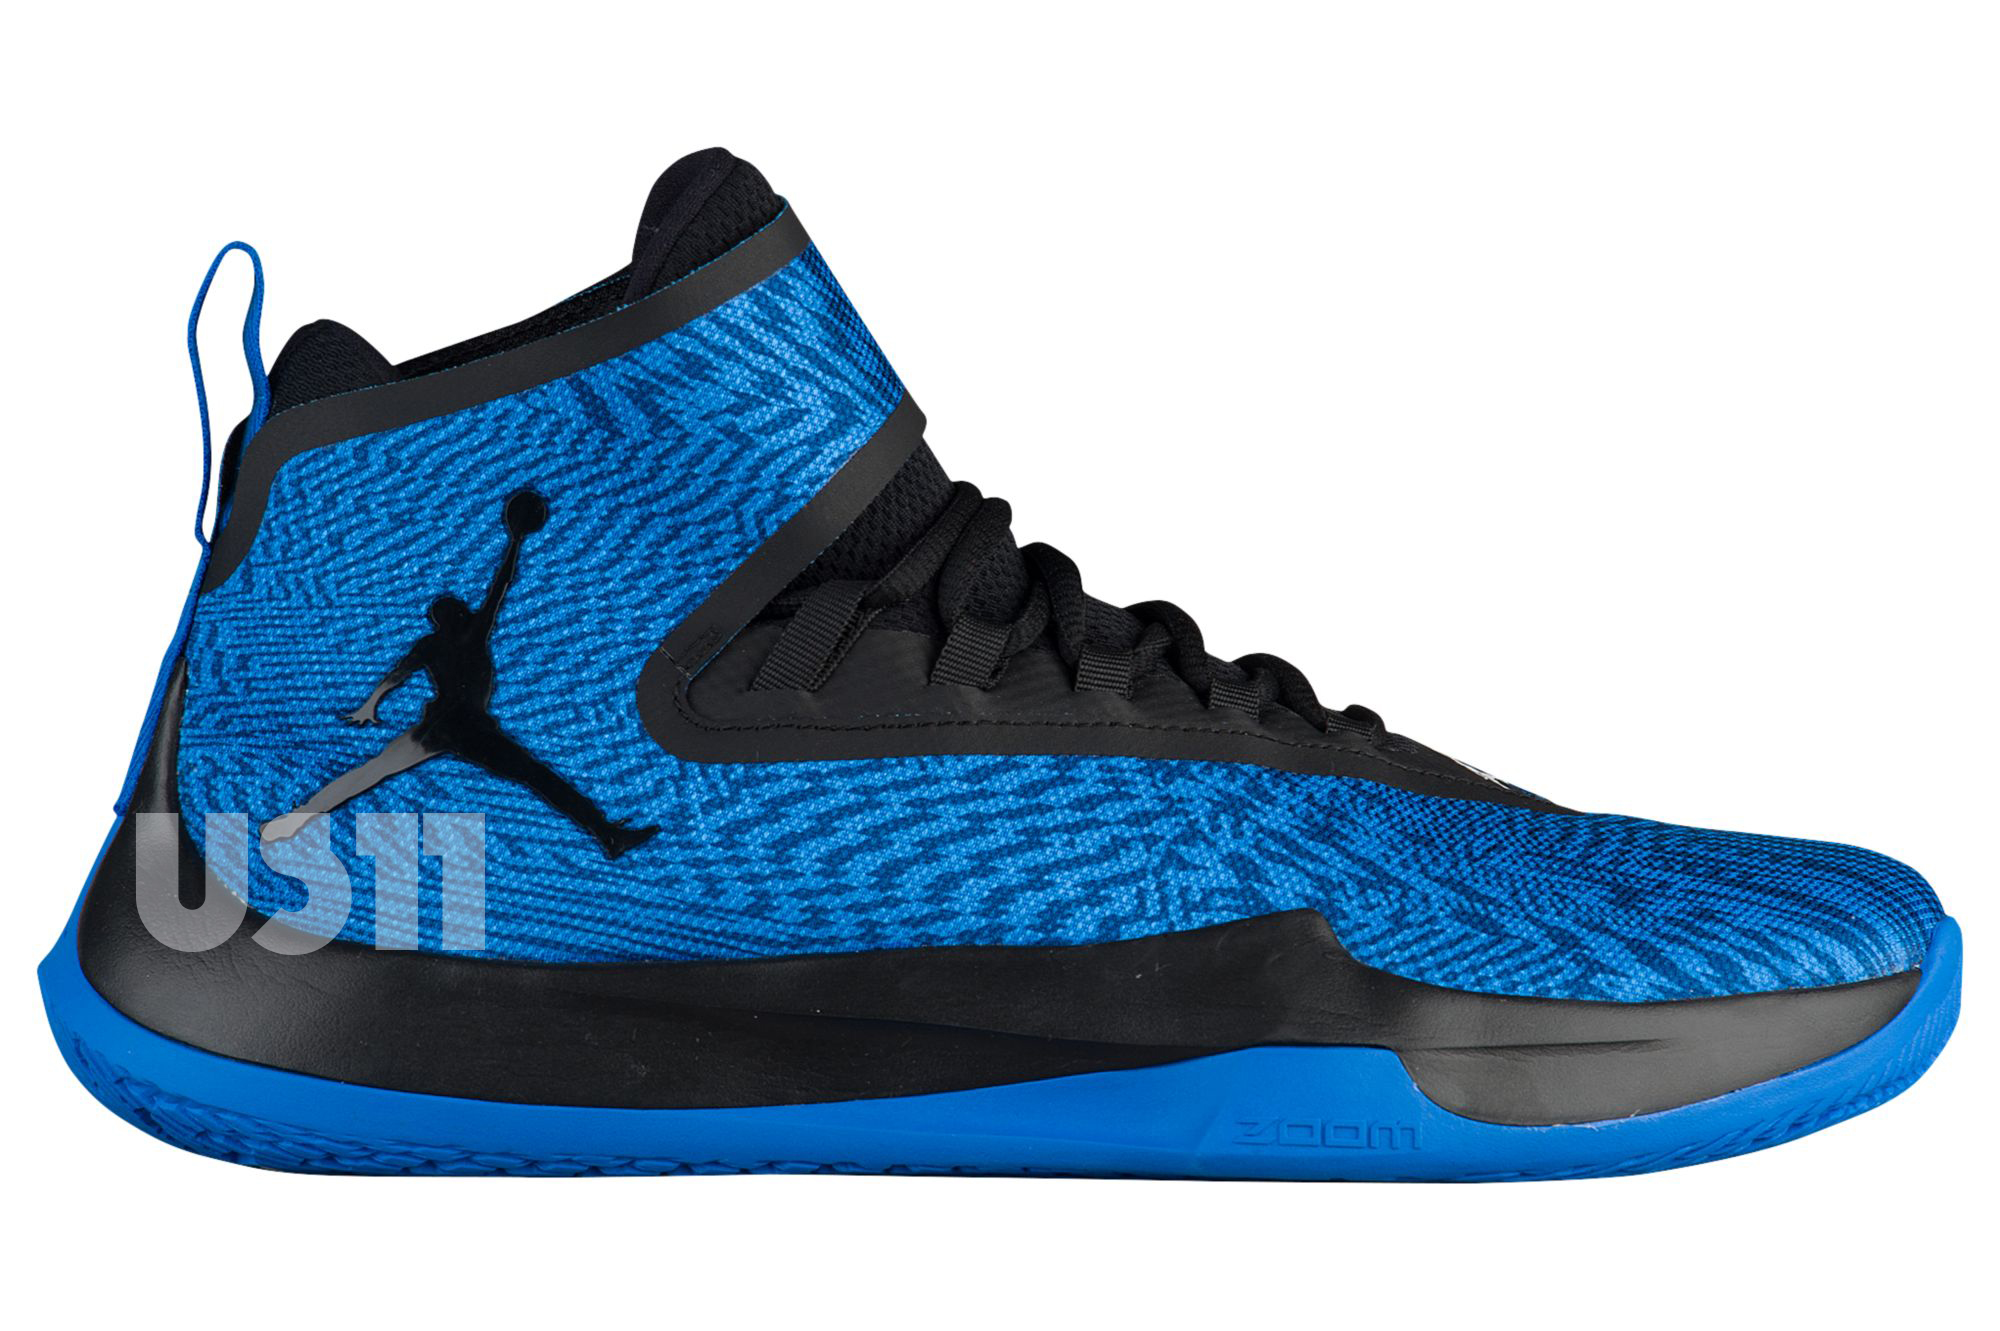 c7419cda6a29b A Detailed Look at the Upcoming Jordan Fly Unlimited - WearTesters